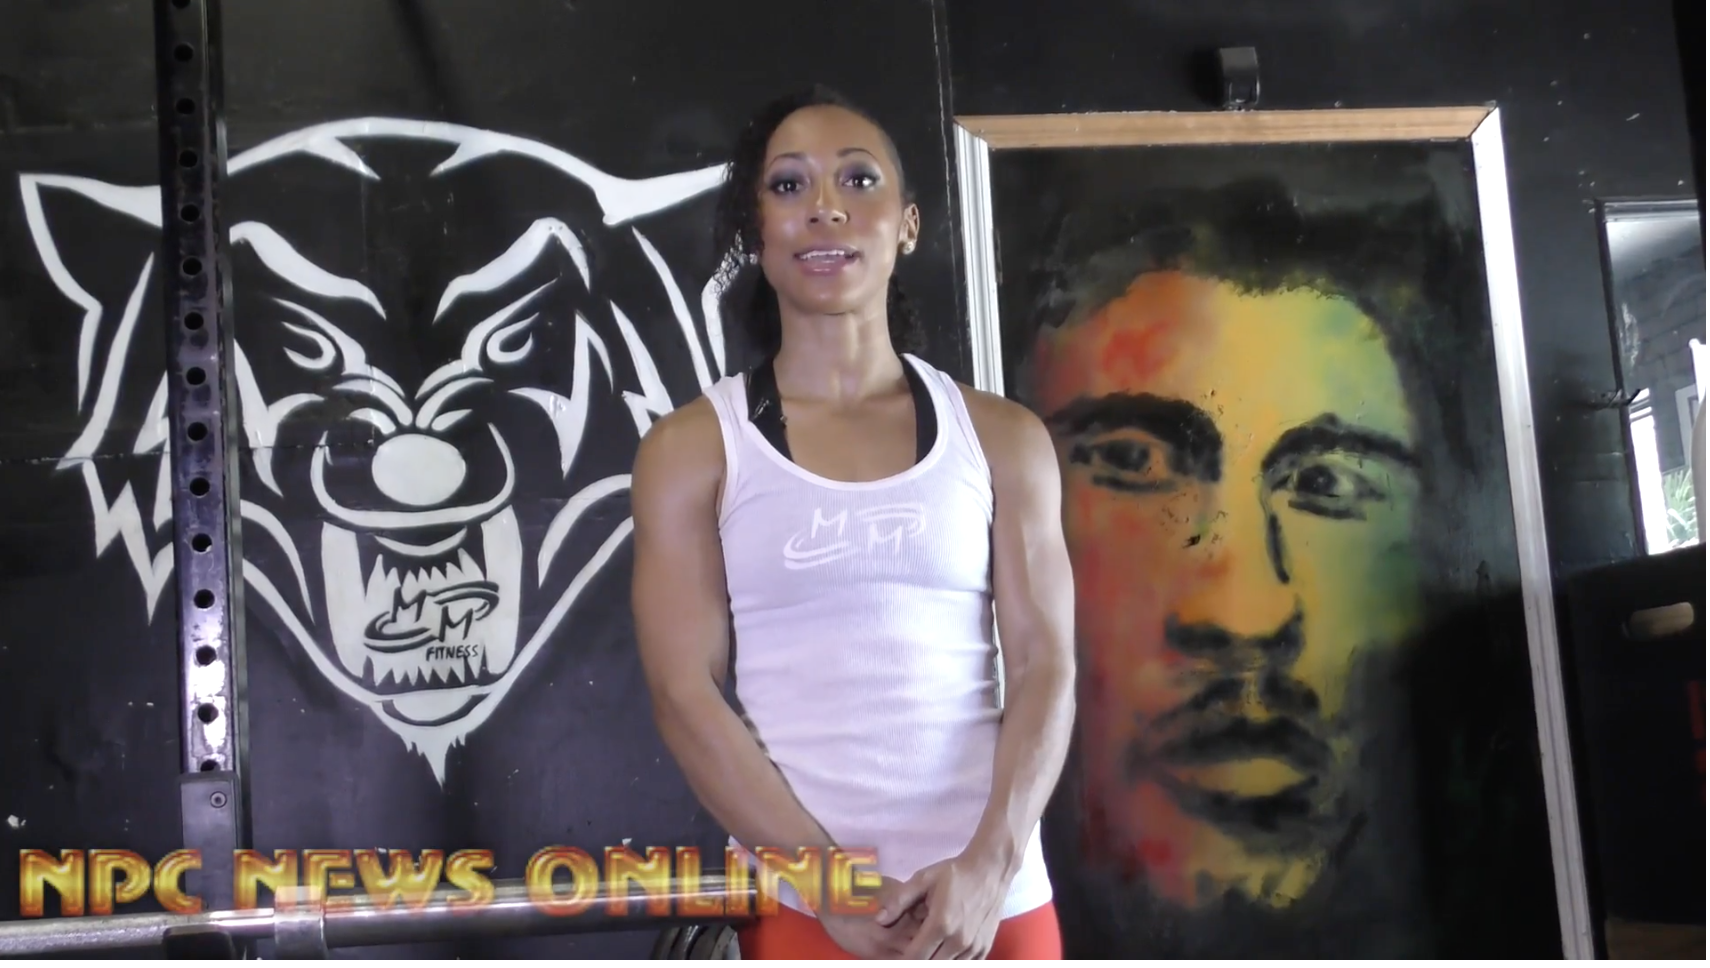 IFBB Bikini Pro Shey Webb Shares Her Preparation Ahead For Her IFBB Pro debut in Charleston South Carolina.